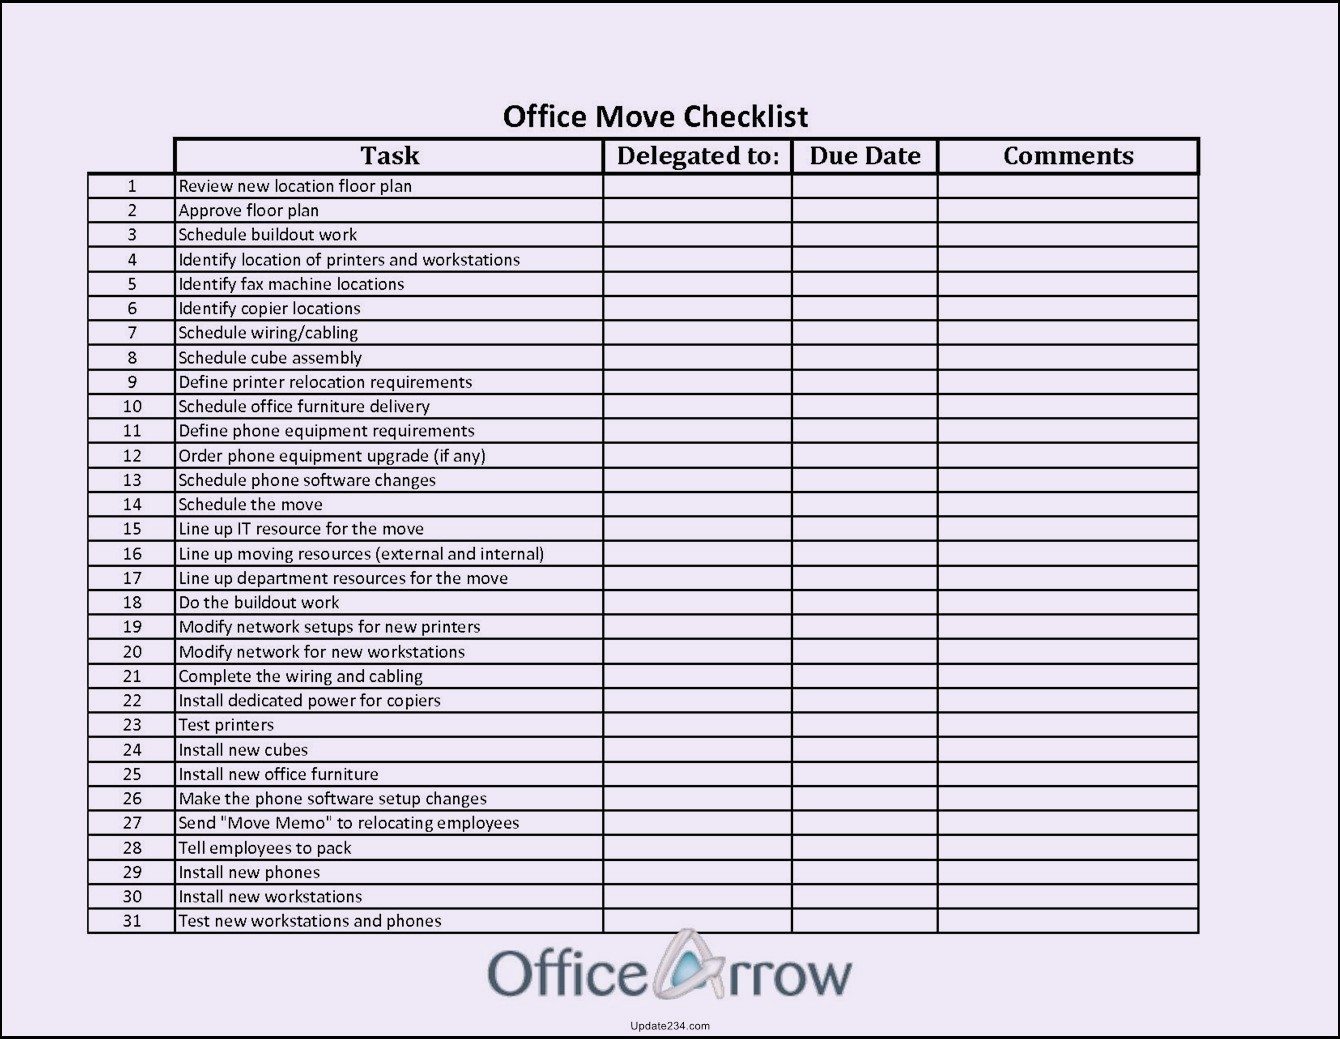 Office Move Checklist Template Excel New Fice Move Checklist Template Excel Template Update234